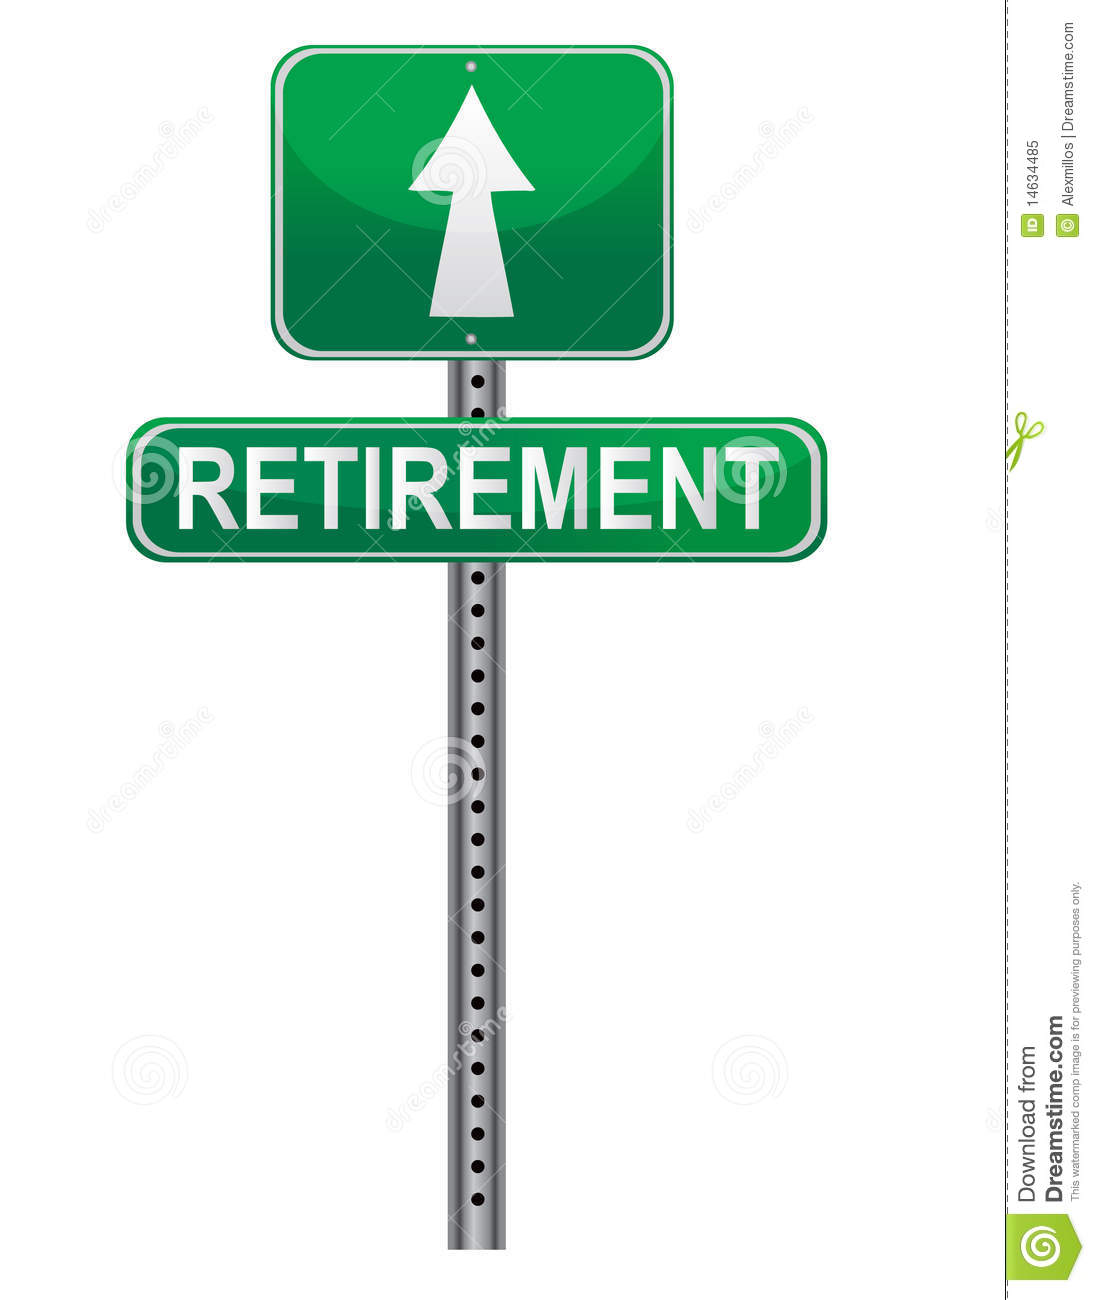 Retirement Street Sign Royalty Free Stock Photo - Image: 14634485